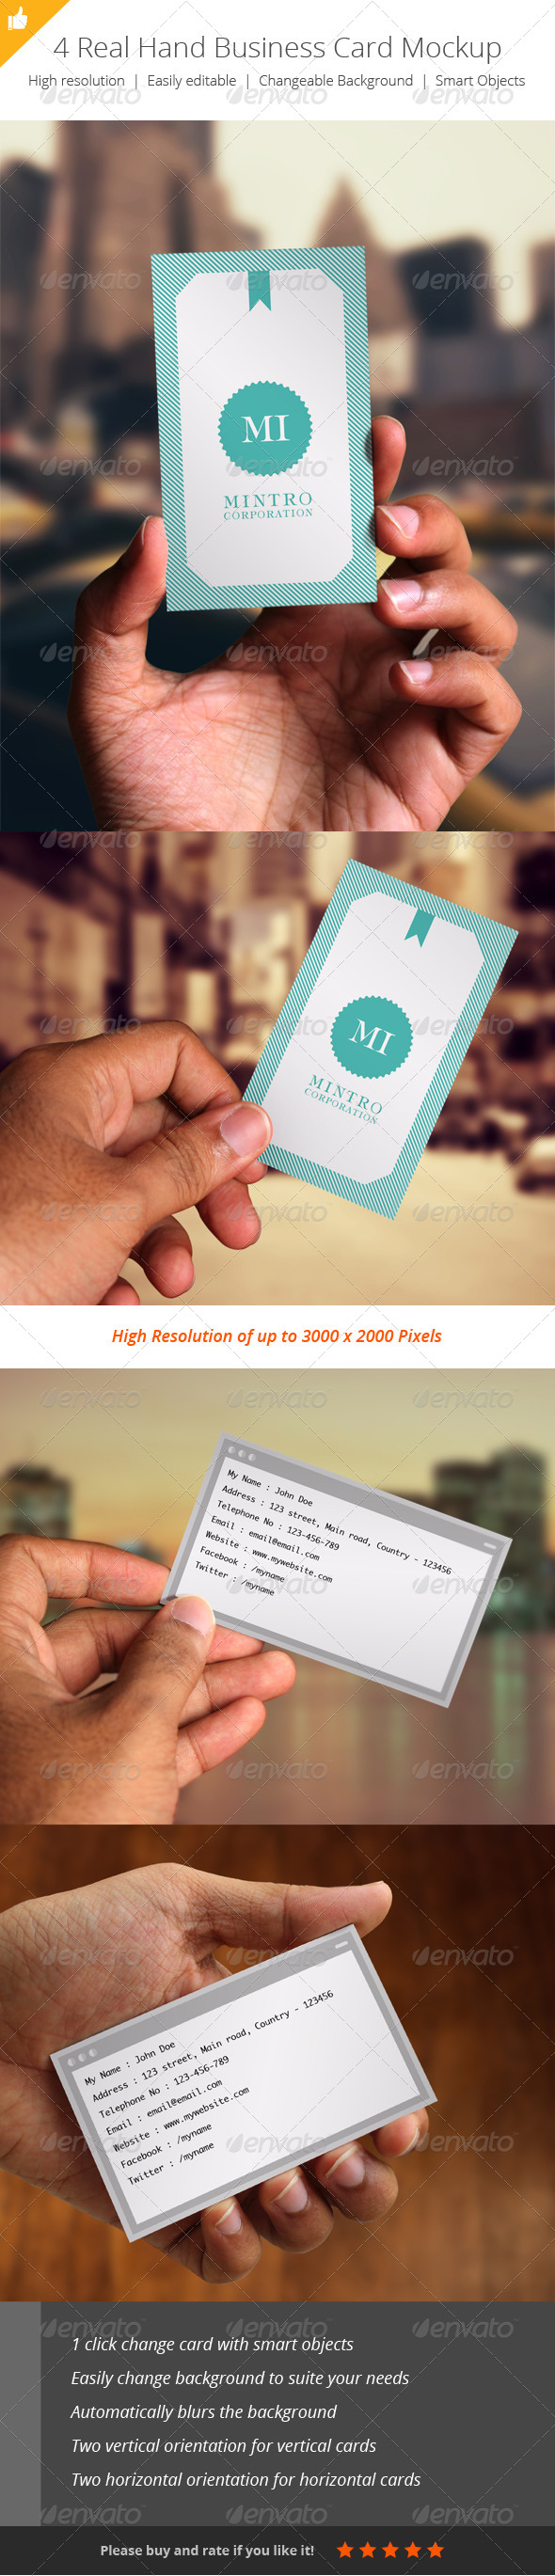 4 Real Hand Business Card Mockup - Business Cards Print